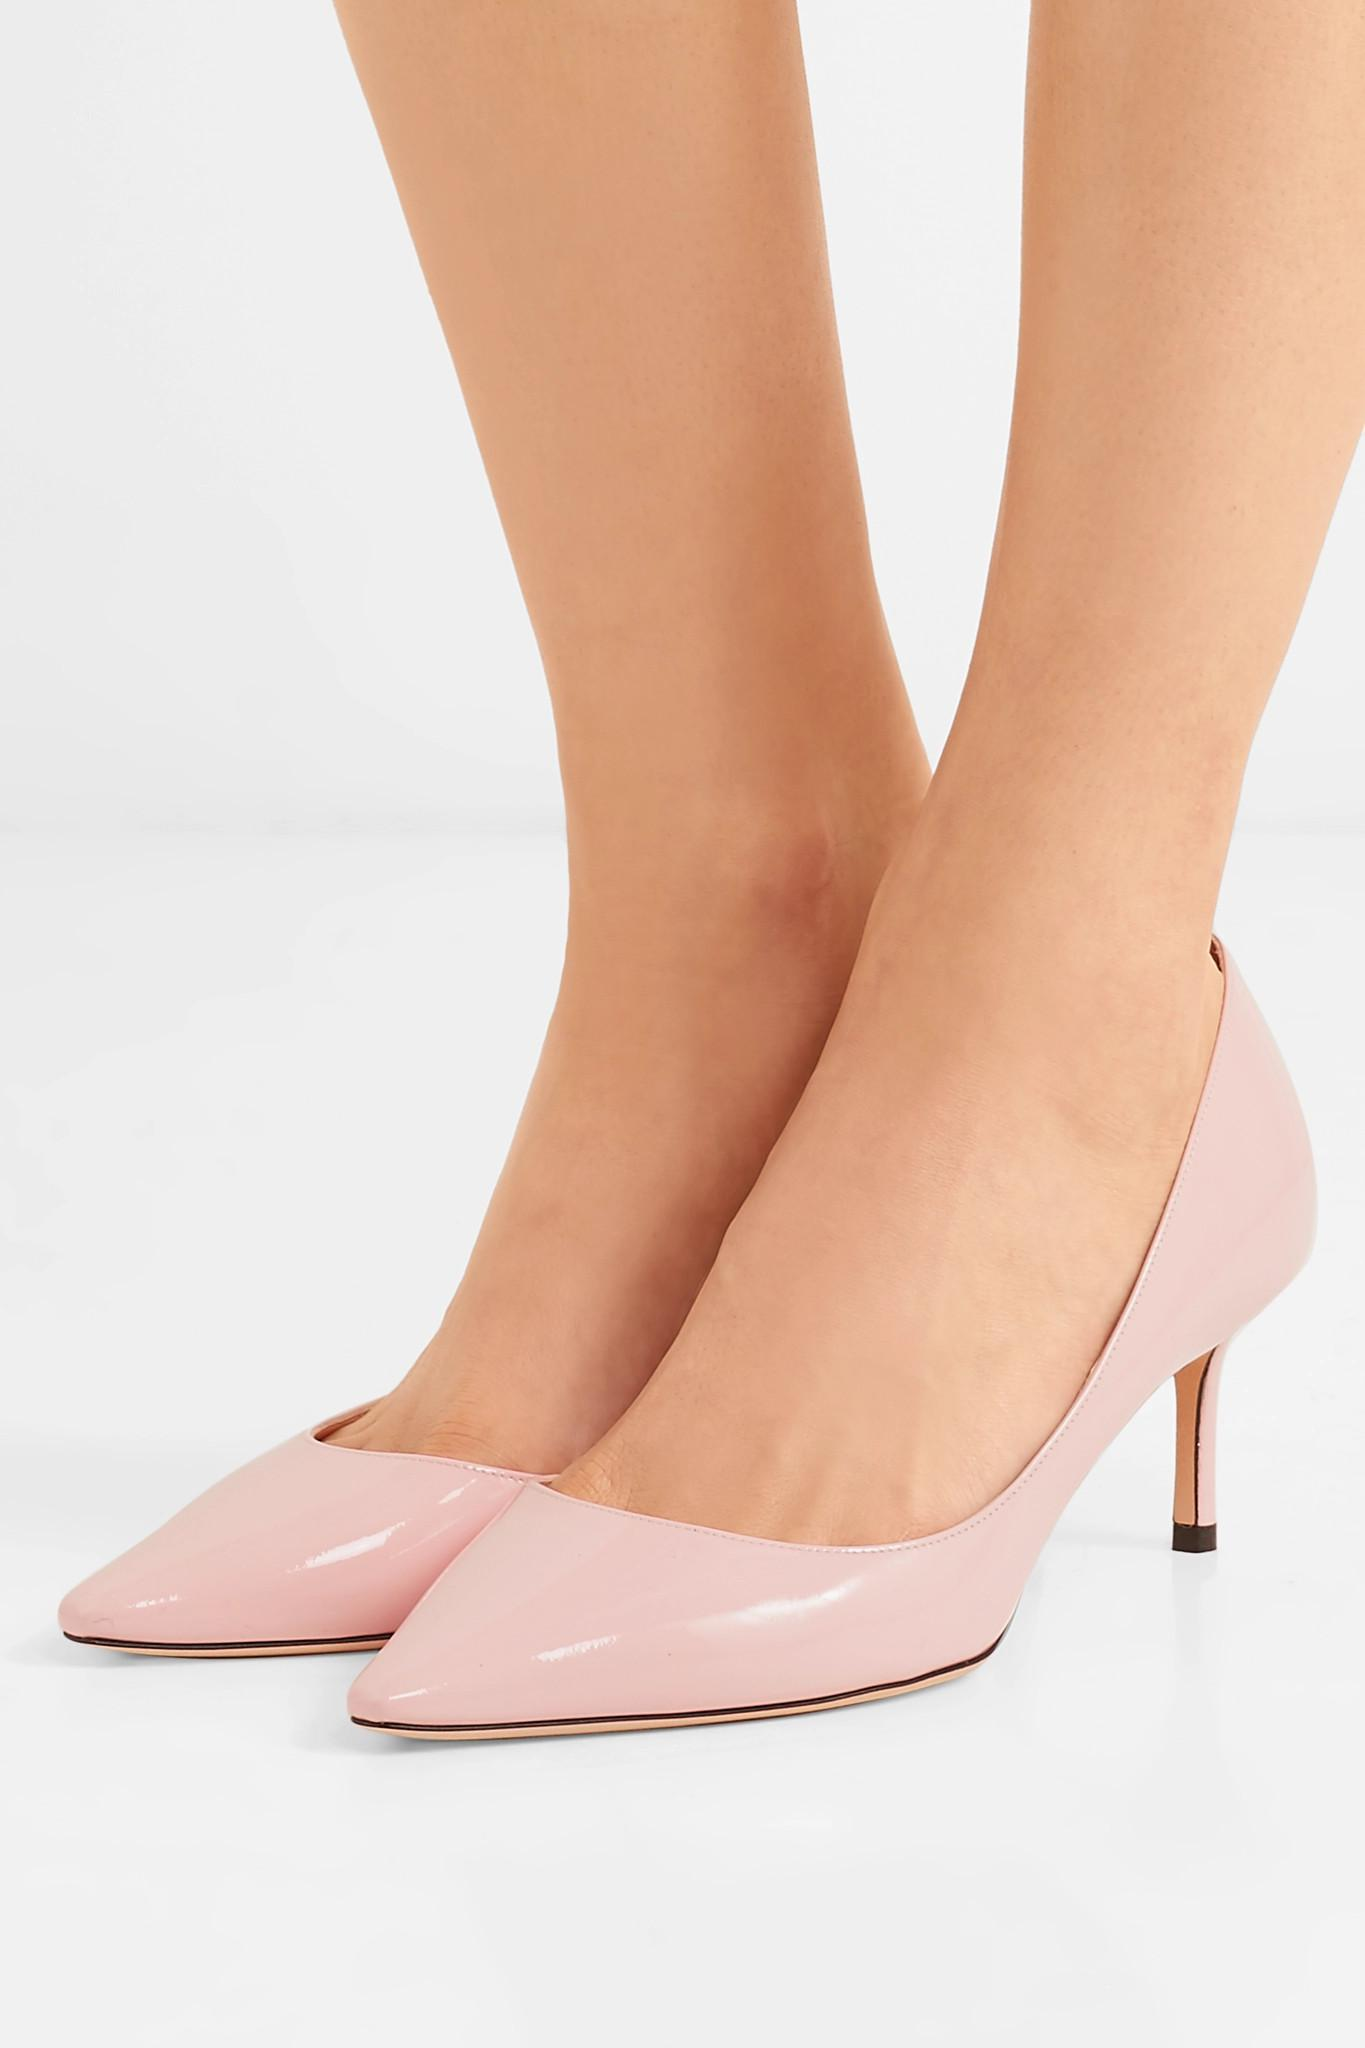 b006127dba8 Jimmy Choo Romy 60 Patent-leather Pumps in Pink - Save 74% - Lyst